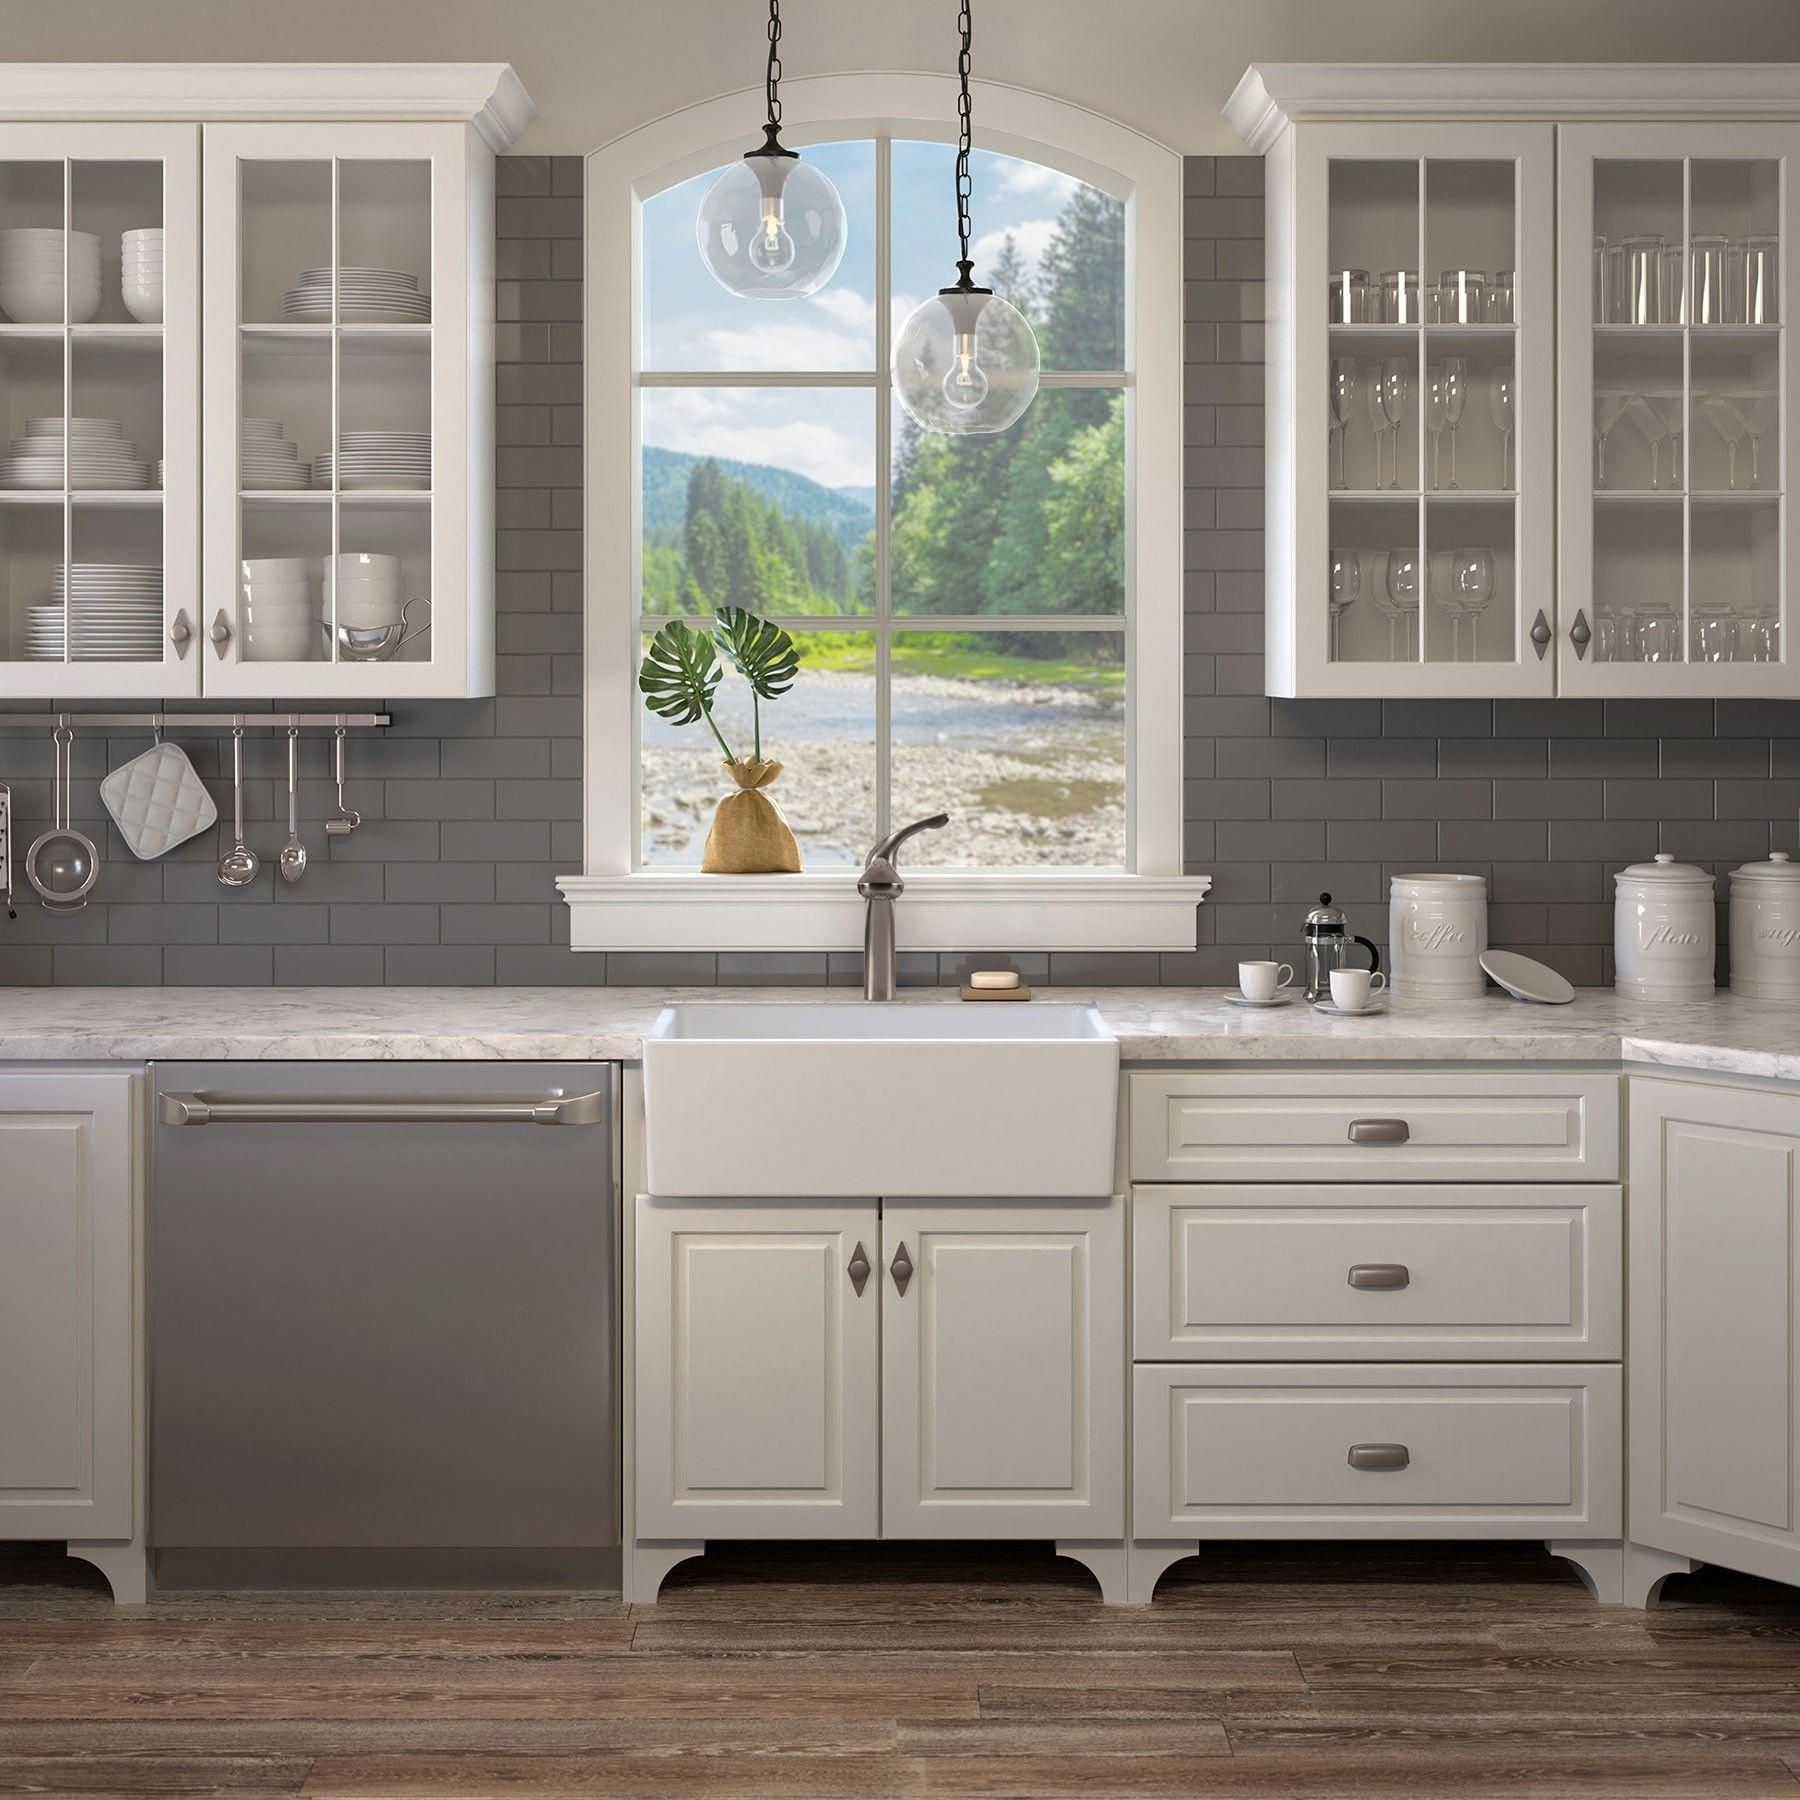 Surrey 30 Fireclay Farmhouse Kitchen Sink Farmhouse Sink Kitchen Kitchen Style Kitchen Renovation